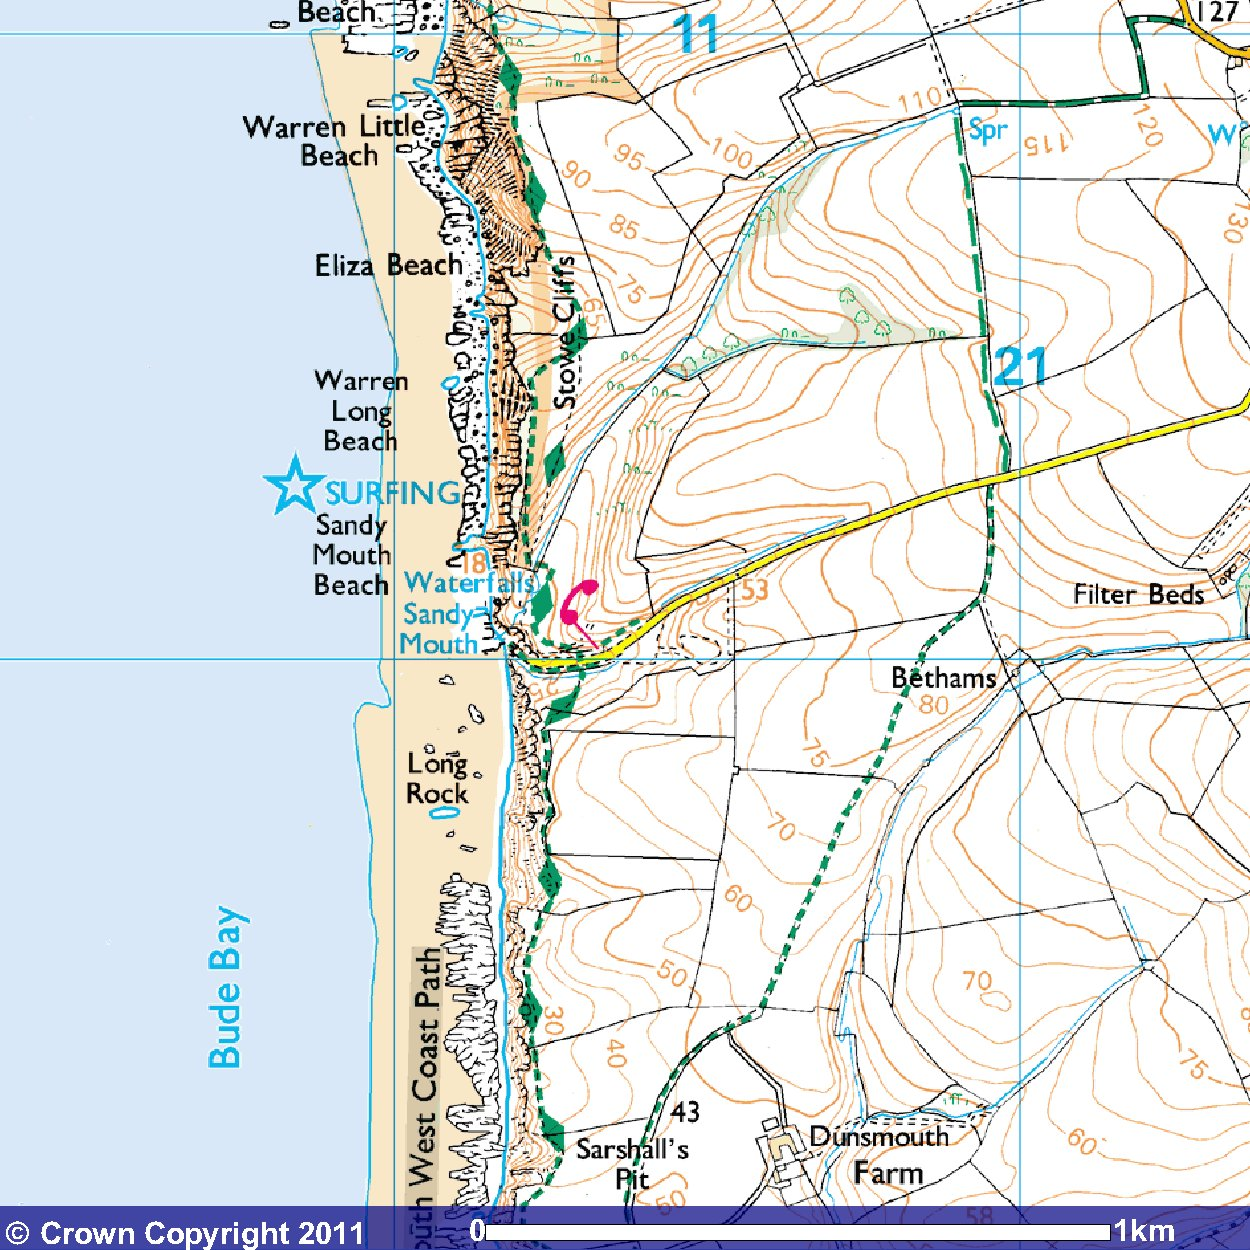 Map Of Ireland Beaches.Visiting Cornwall Beach Guide For Sandy Mouth